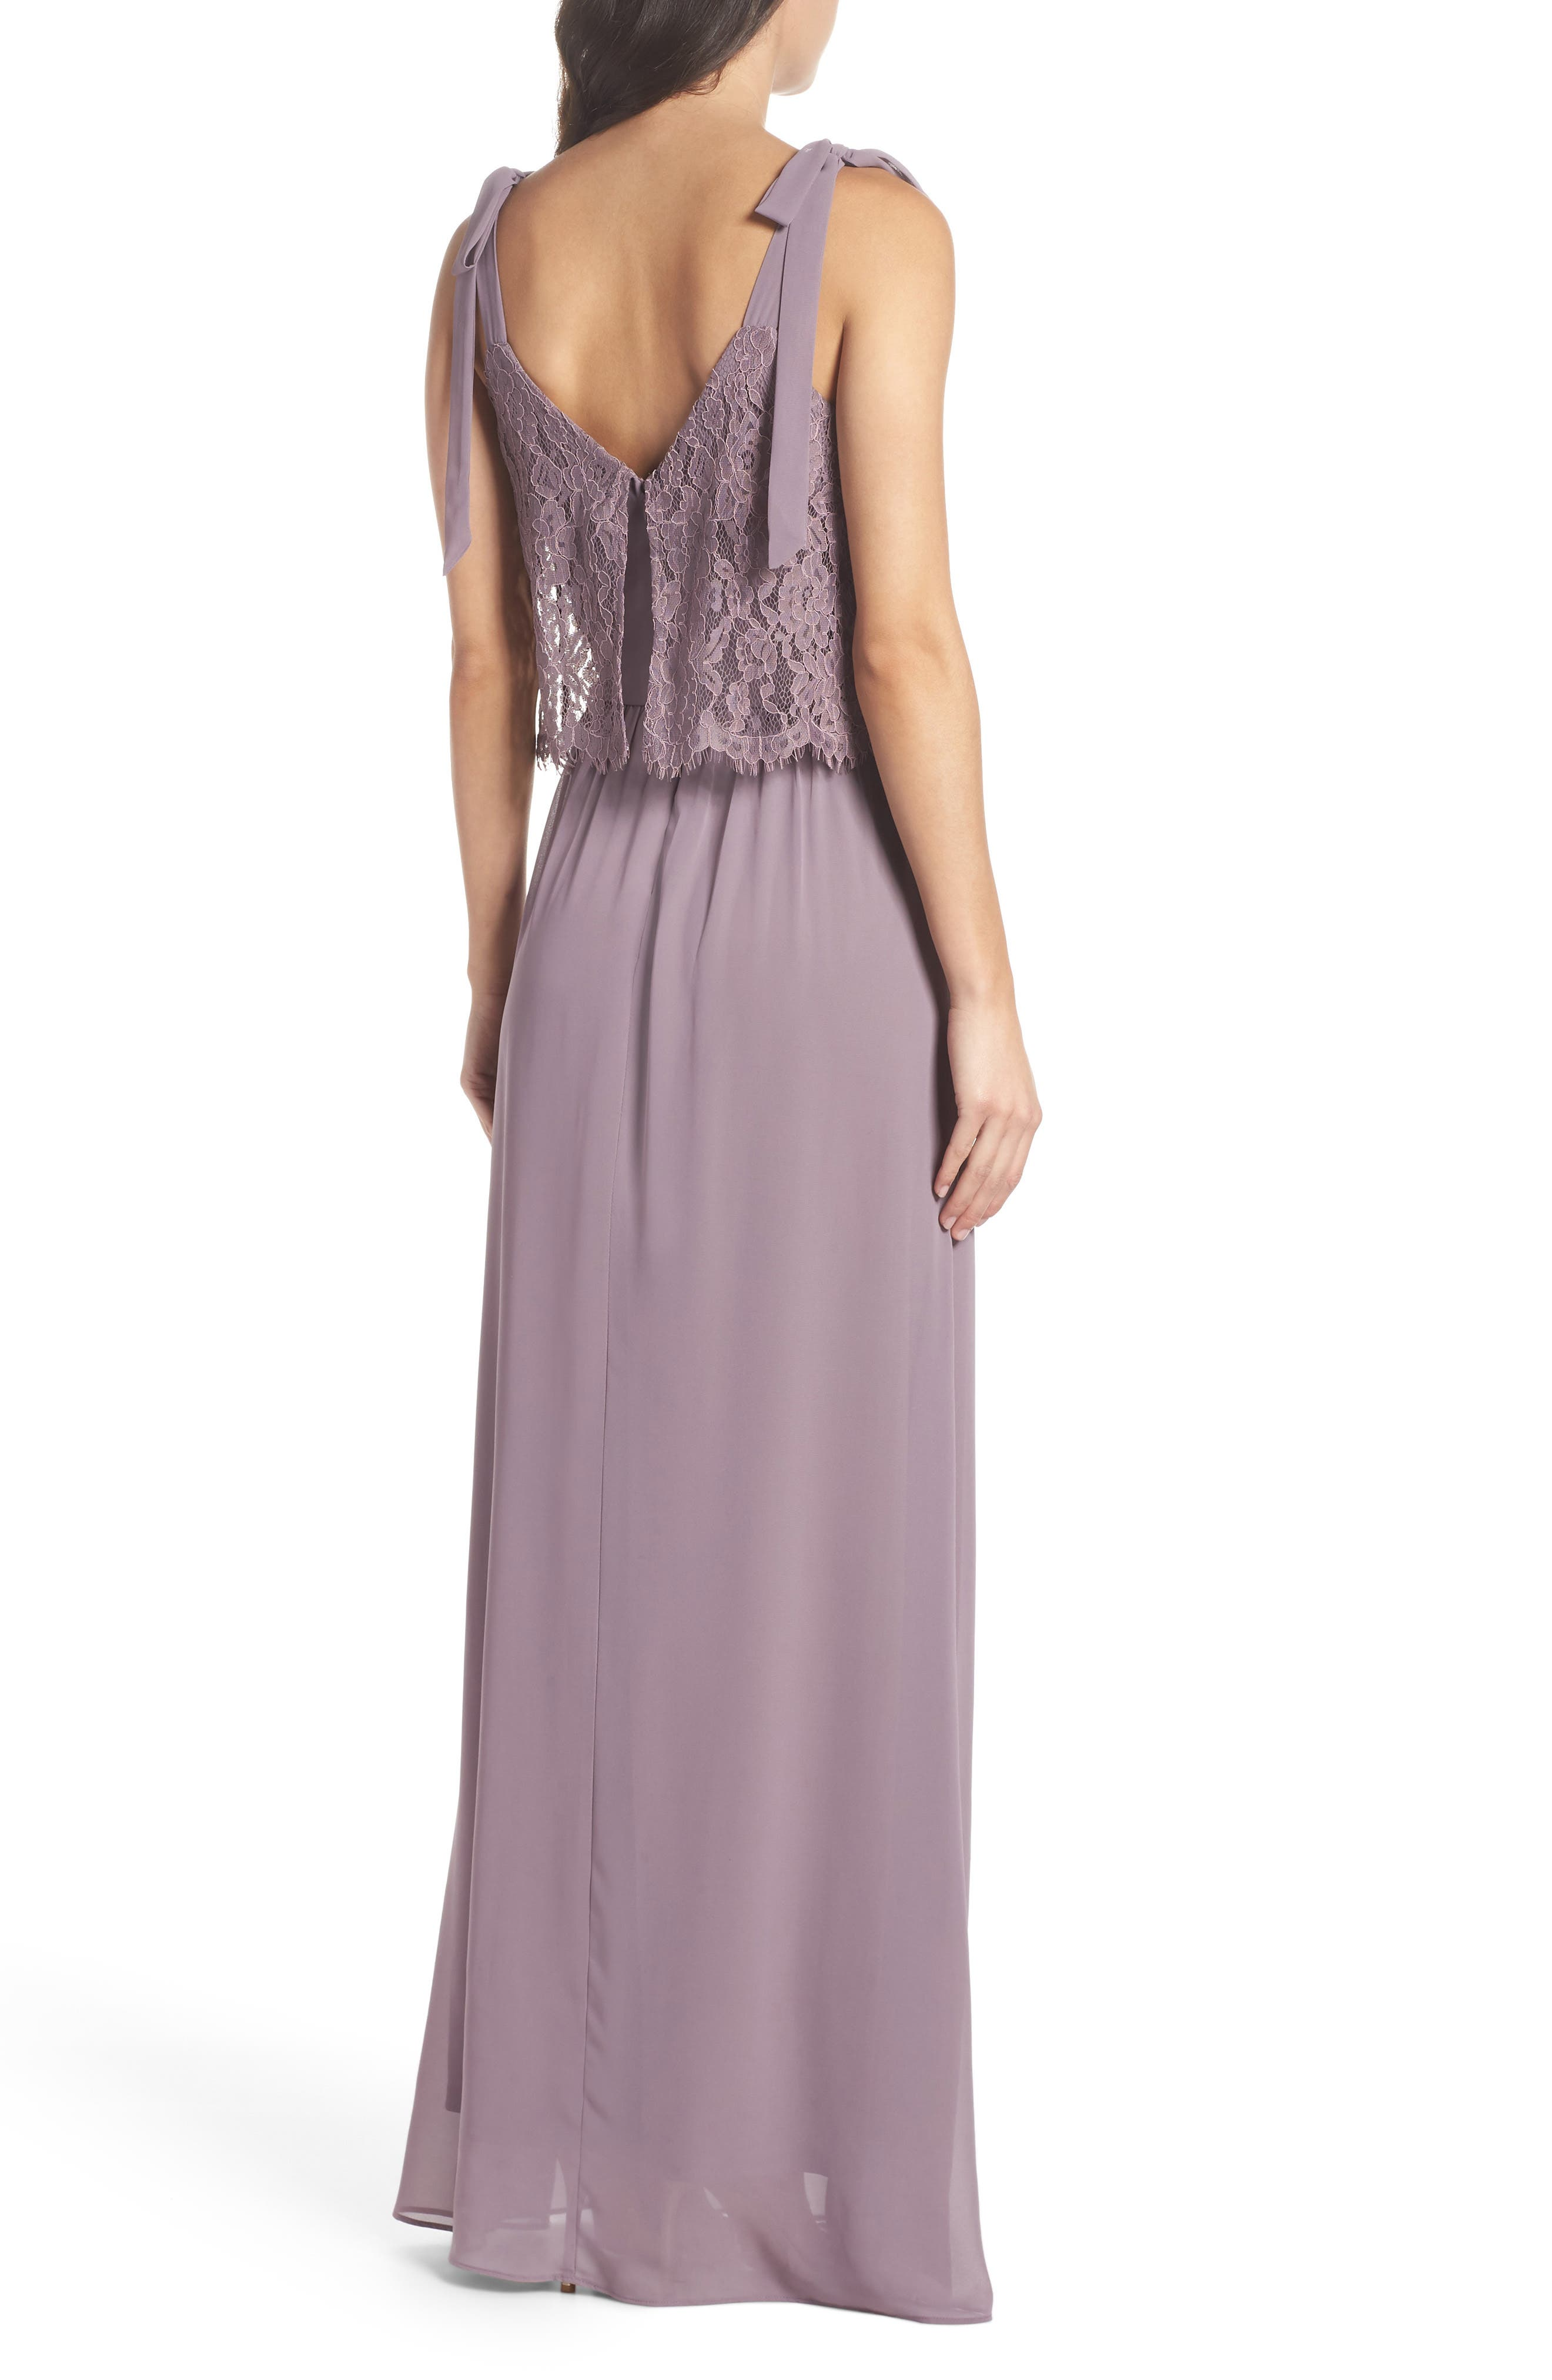 Koko Tie Shoulder Lace Bodice Gown,                             Alternate thumbnail 2, color,                             LILAC